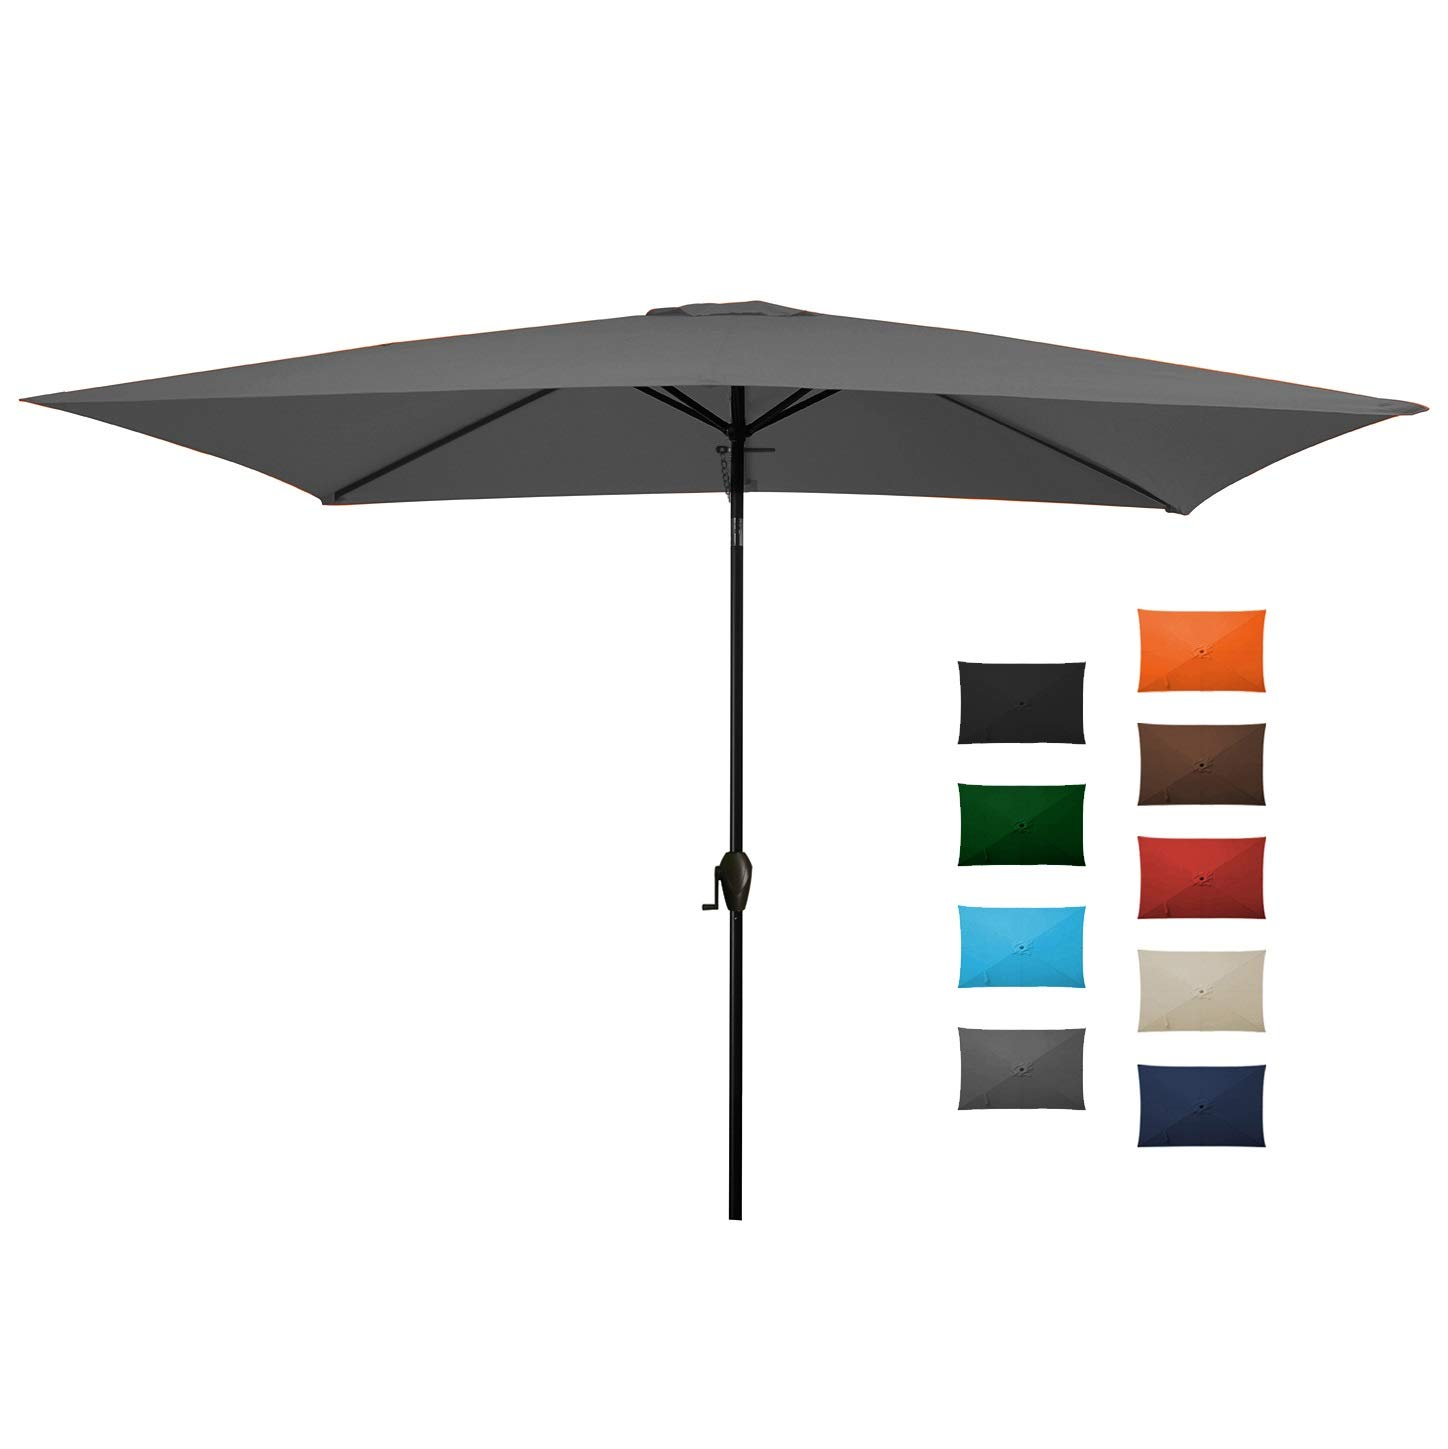 MEWAY Rectangular Patio Table Umbrella Garden Umbrella with Tilt and Crank for Commercial Event Market, Garden, Deck,Backyard,Pool and Patio Table (6.6 X 10 ft, Grey)